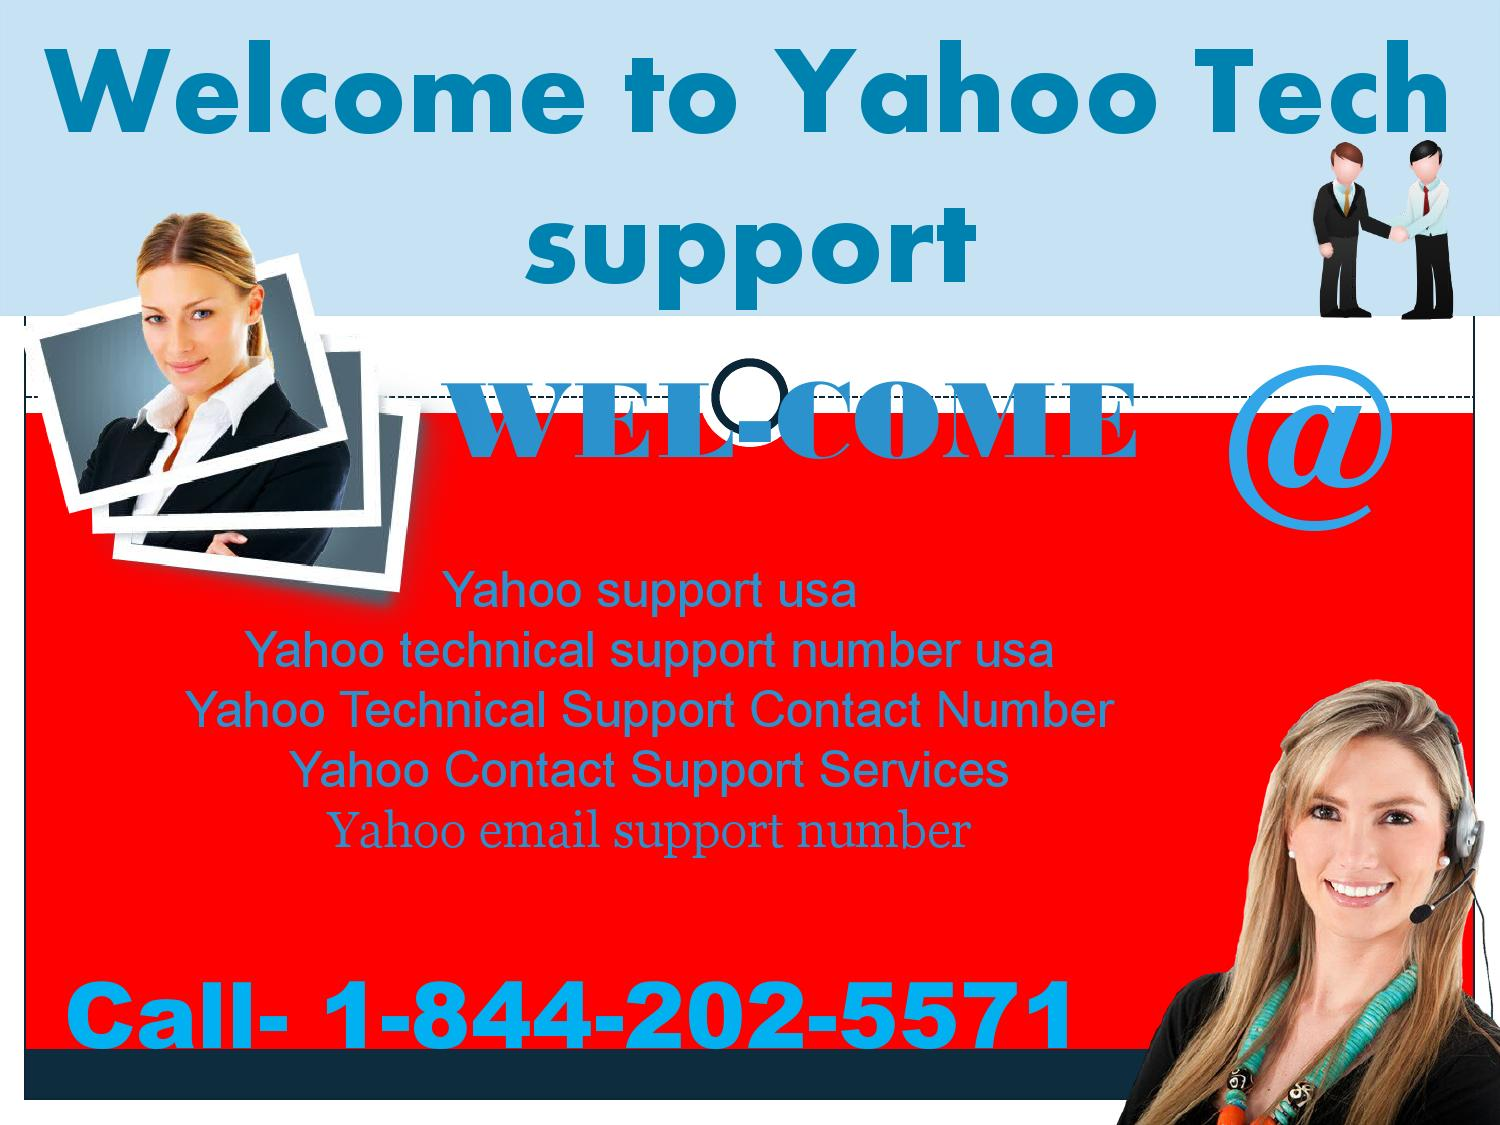 1-844-202-5571YAHOO technical Support number, Phone Number by passwordrecoverysupport - Issuu